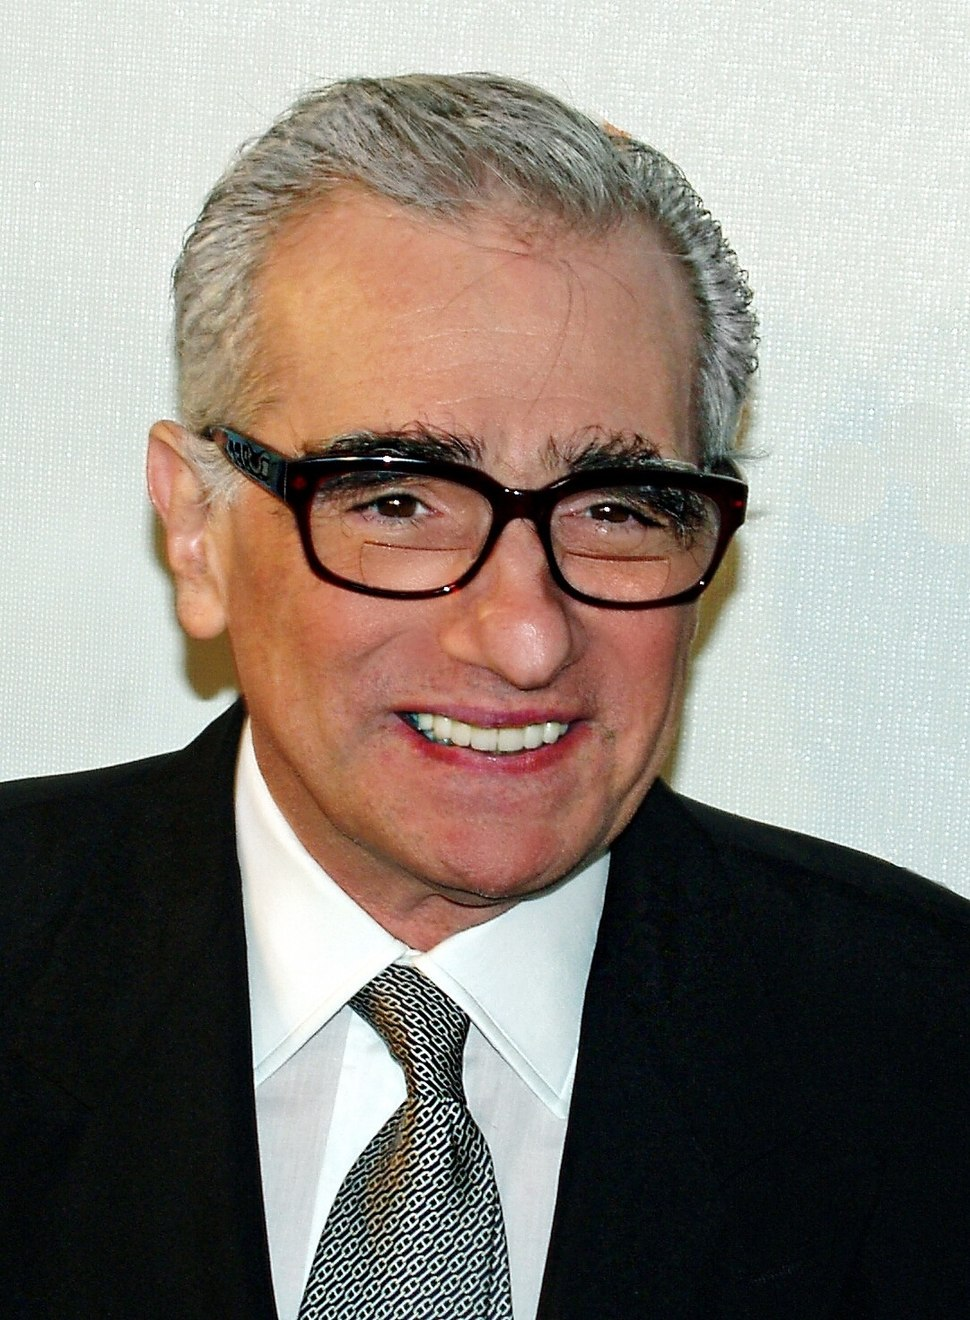 Martin Scorsese by David Shankbone